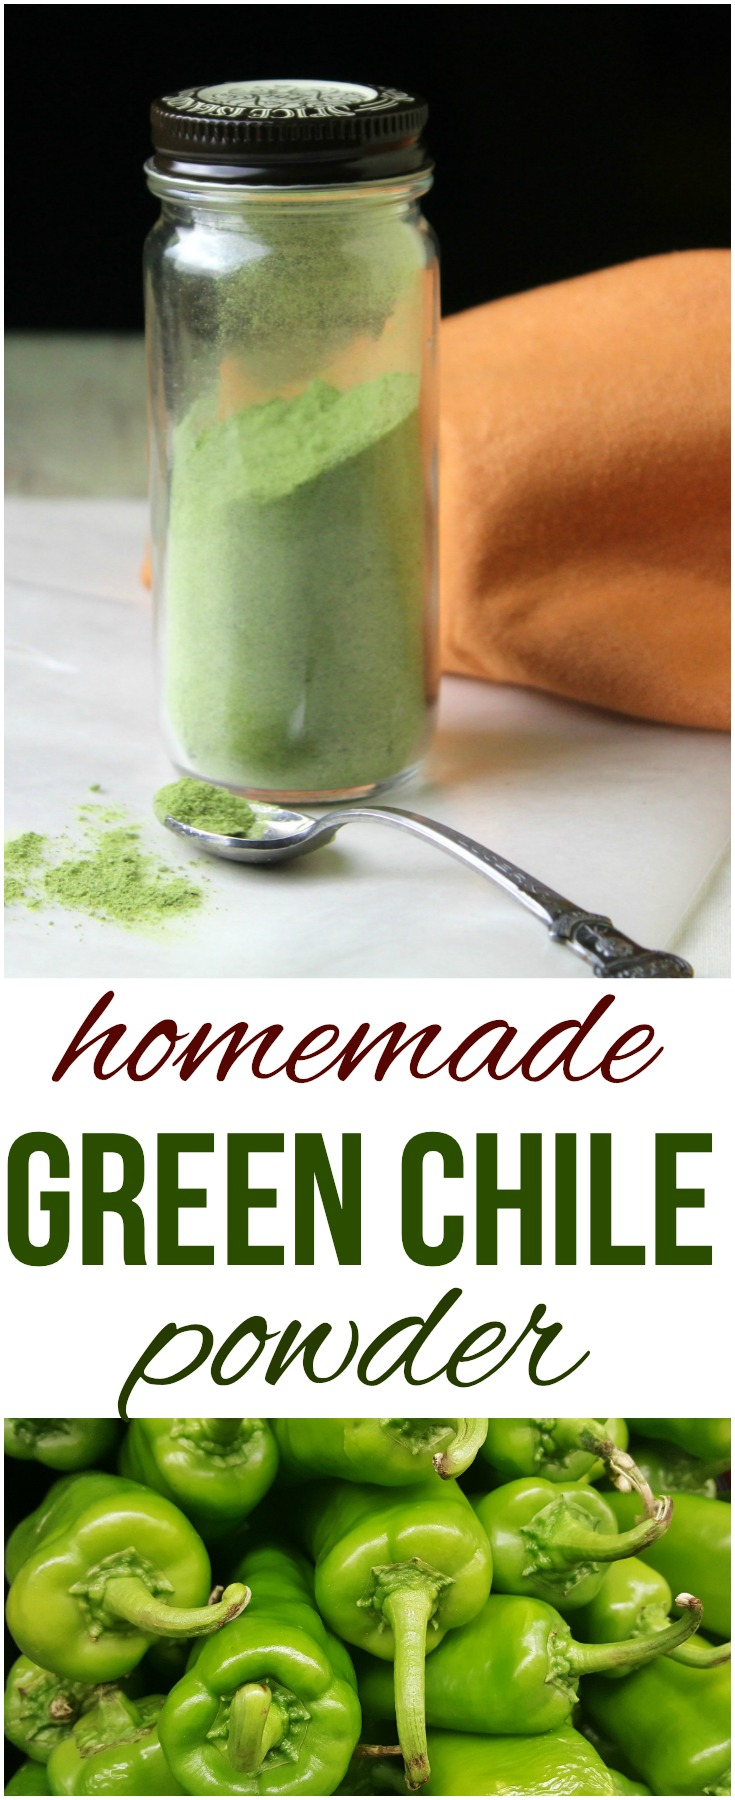 Add a flavorful kick to any dish with this spicy green chile powder that you can make easily at home with your garden bounty  of fresh green chiles.